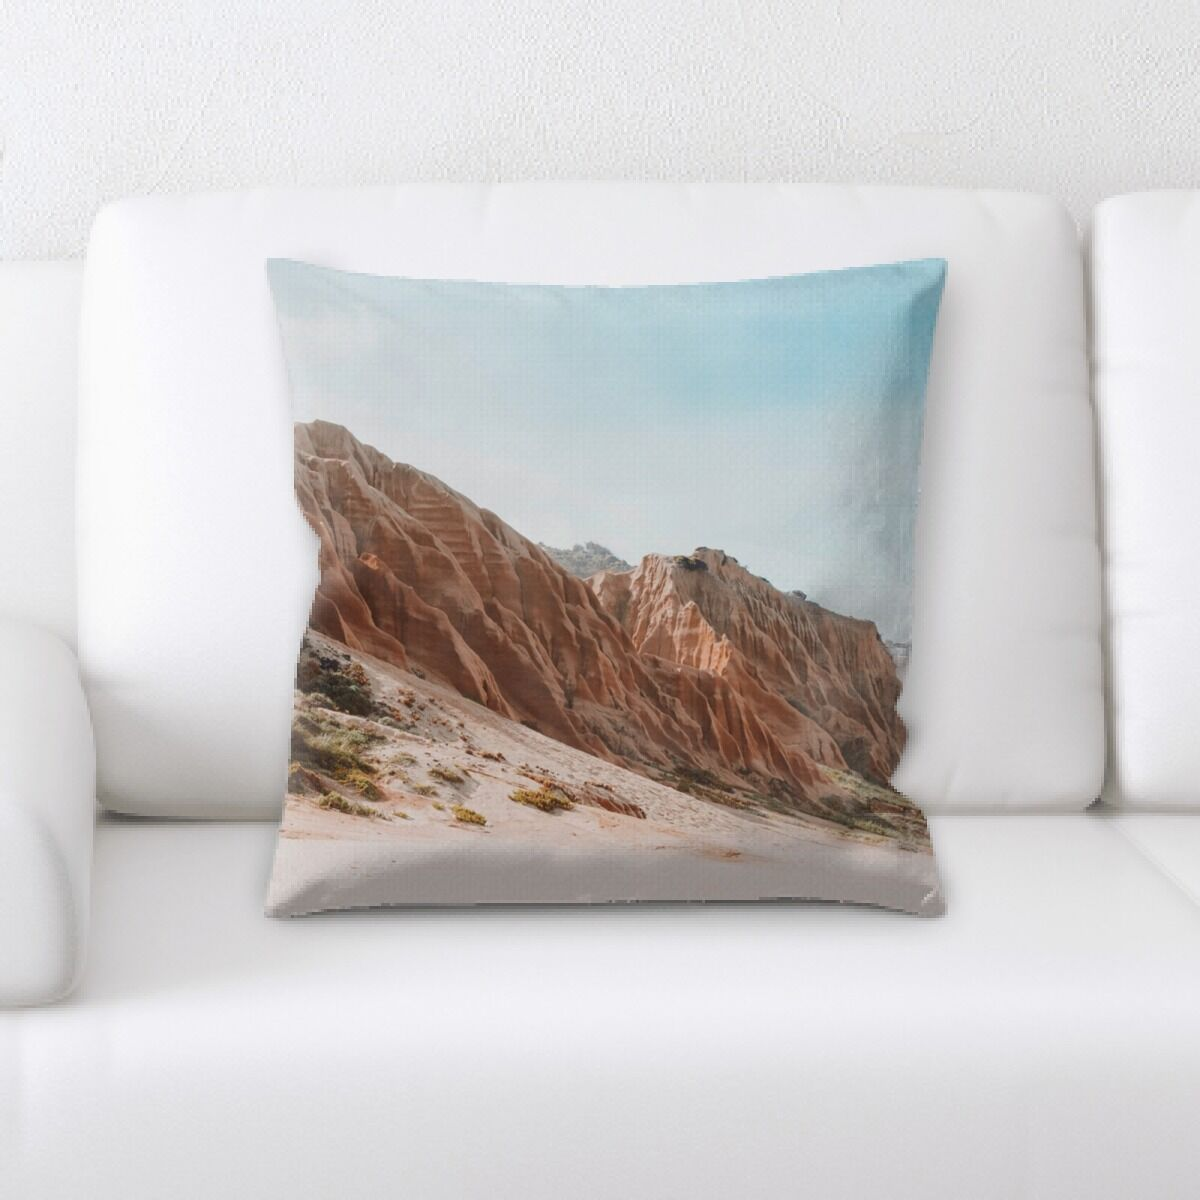 Call Mountain and Cliffs (224) Throw Pillow